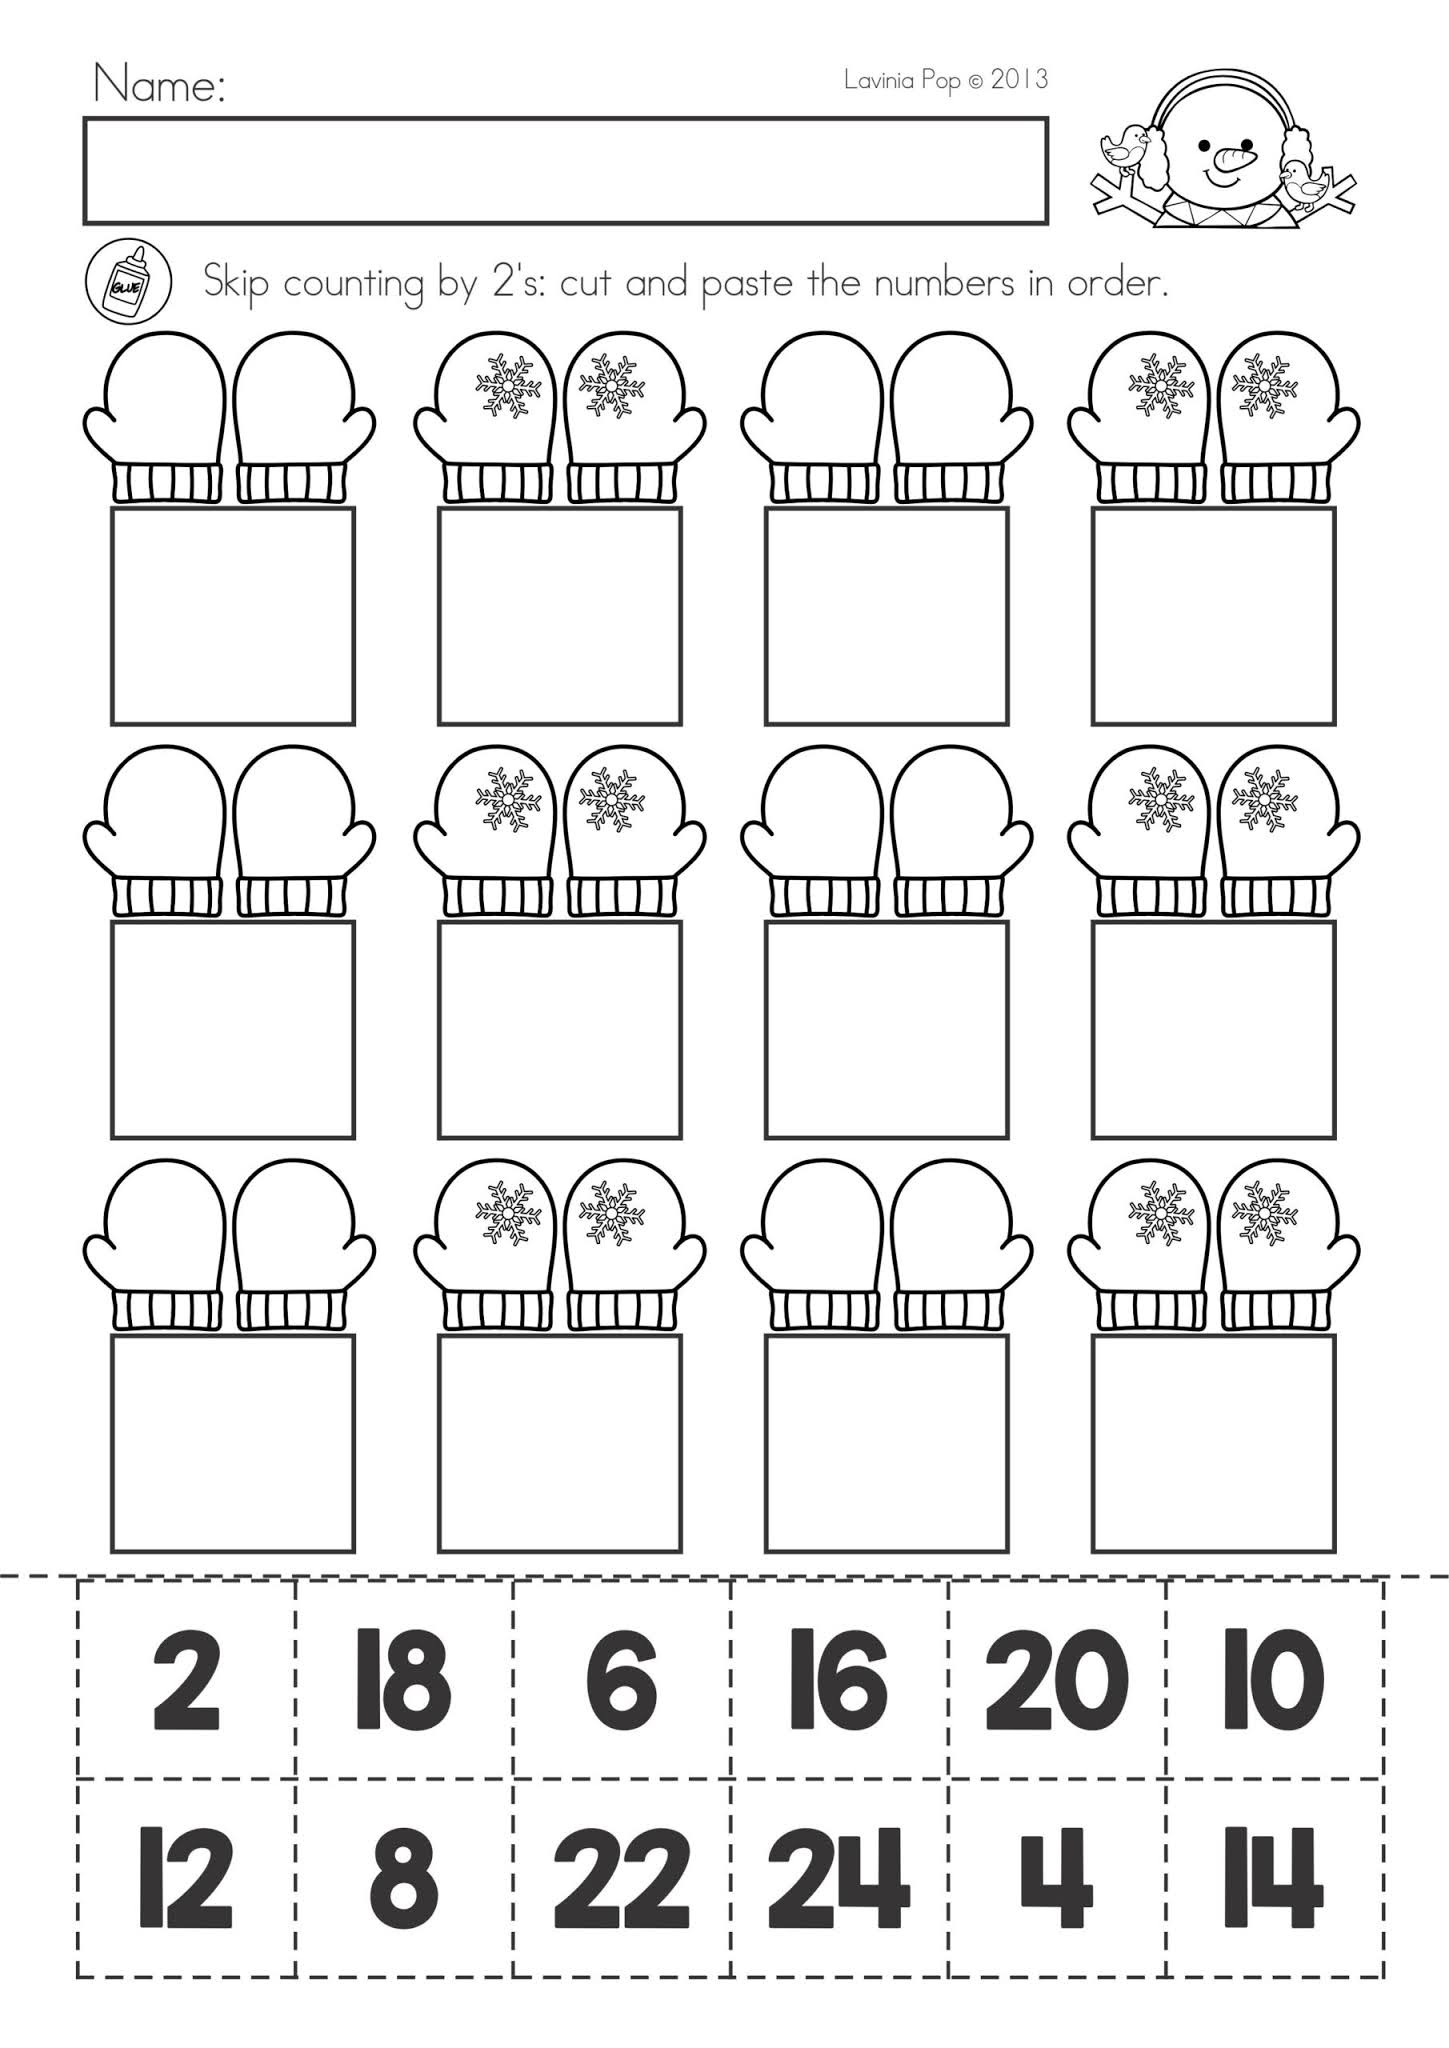 Spring Math Worksheets For 2nd Grade   rxuxa [ 2048 x 1449 Pixel ]